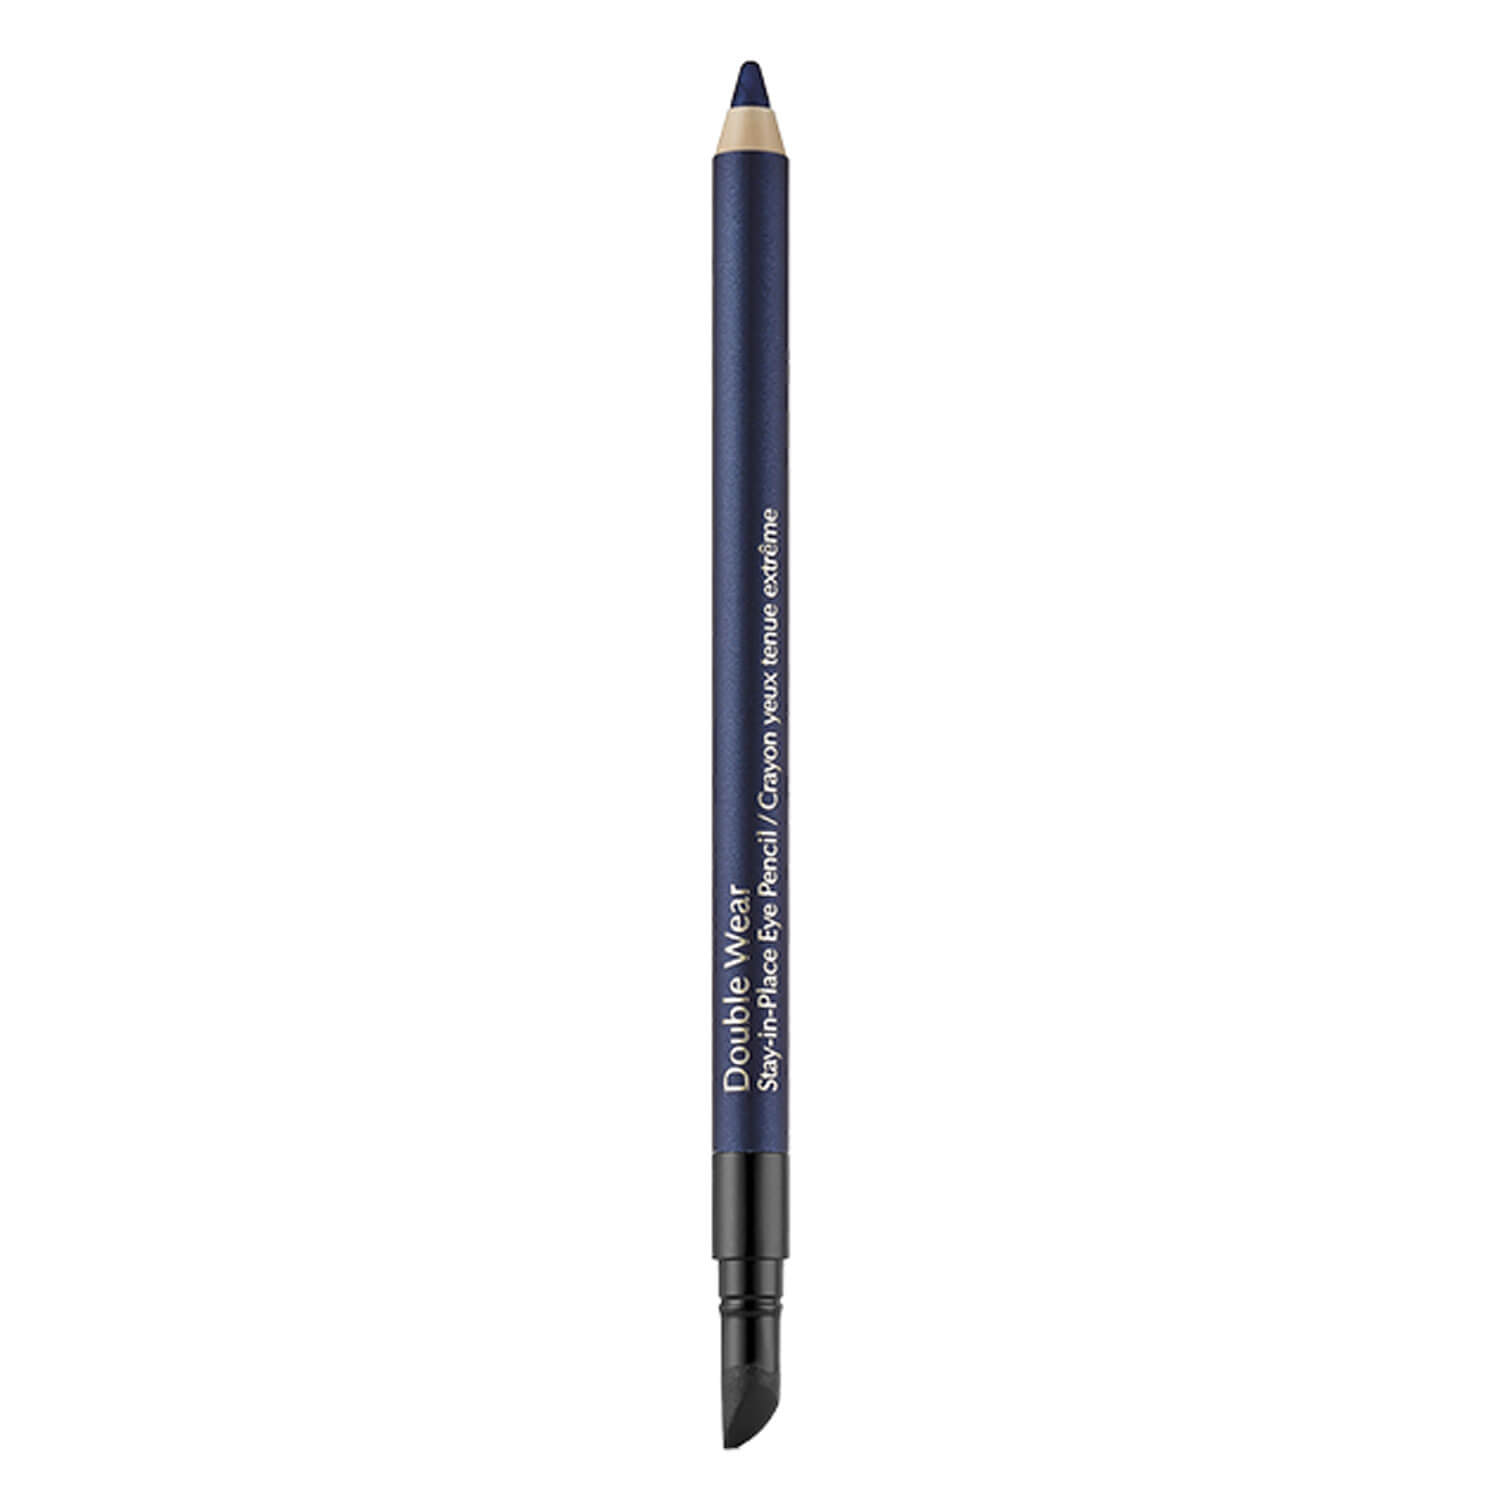 Double Wear - Stay-in-Place Eye Pencil Sapphire